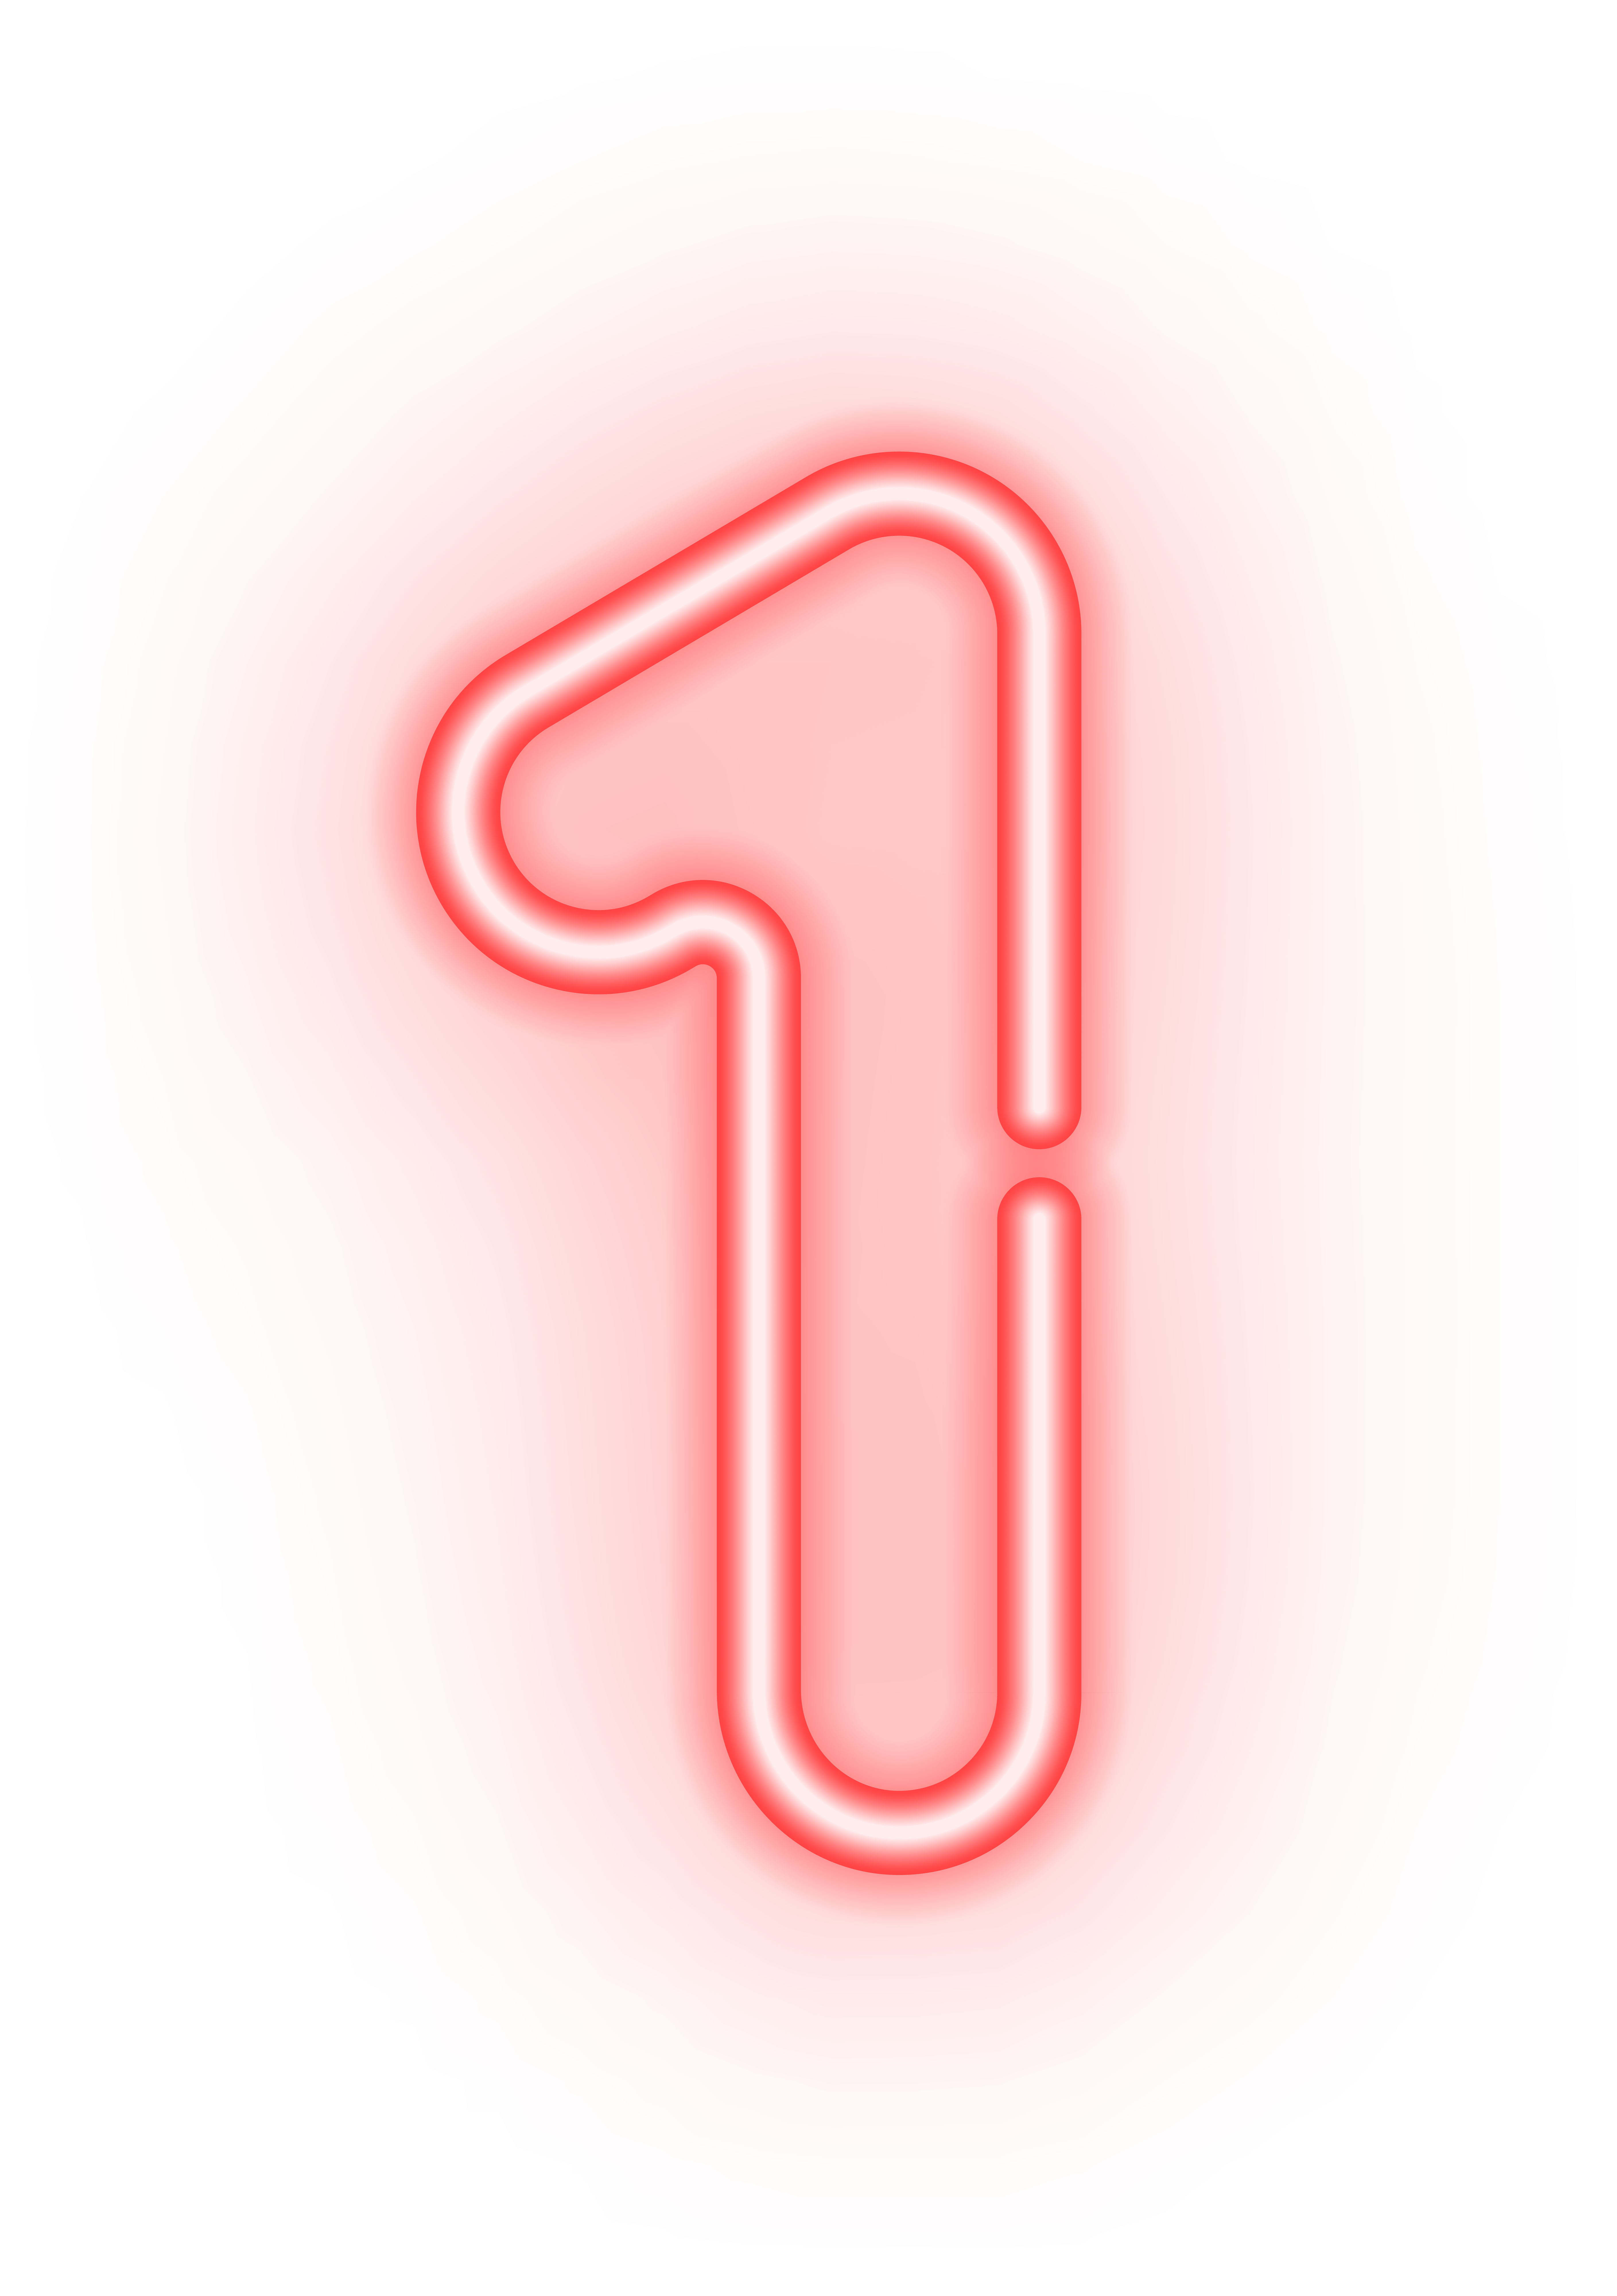 Number One Neon Transparent PNG Image.